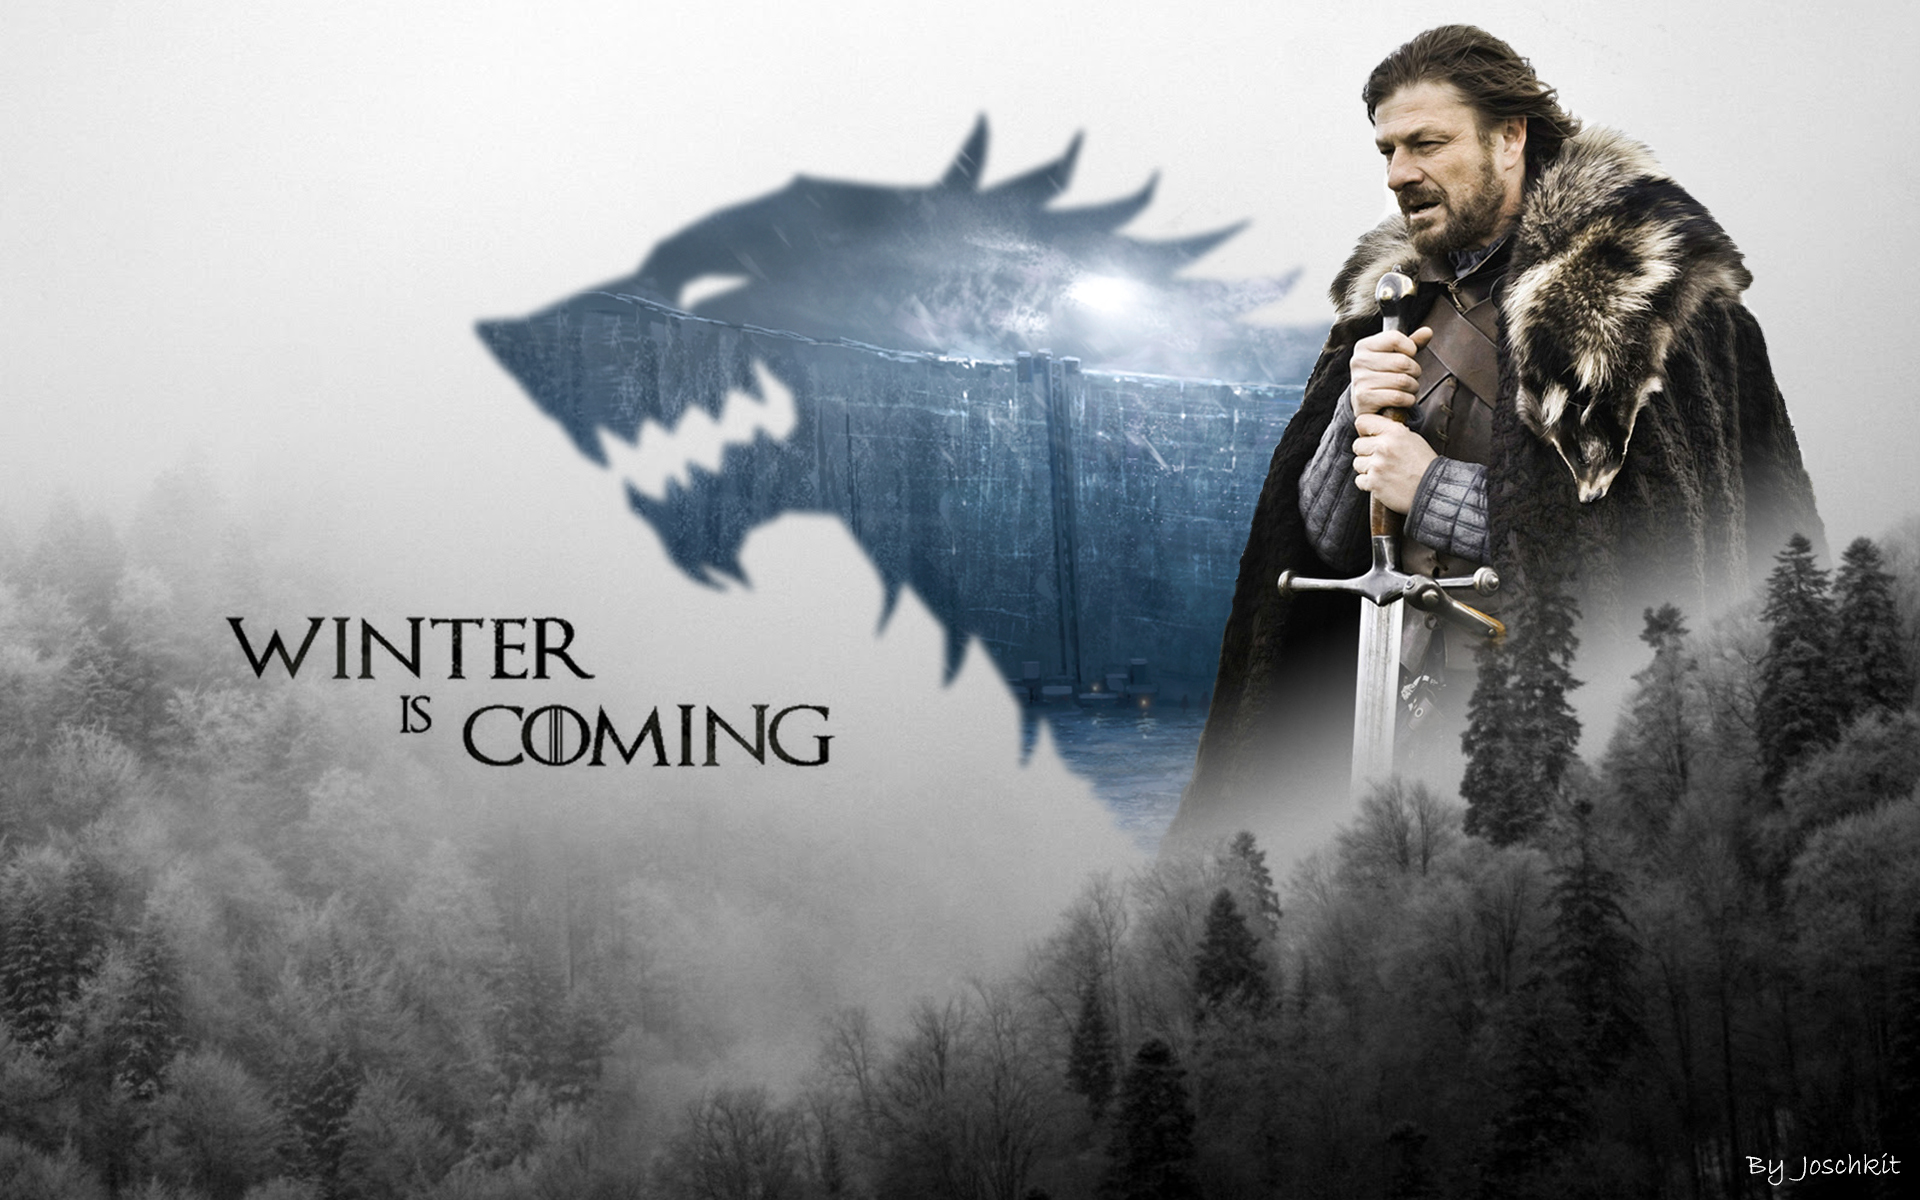 Game of Thrones Wallpaper Eddard Stark by Joschkit 1920x1200